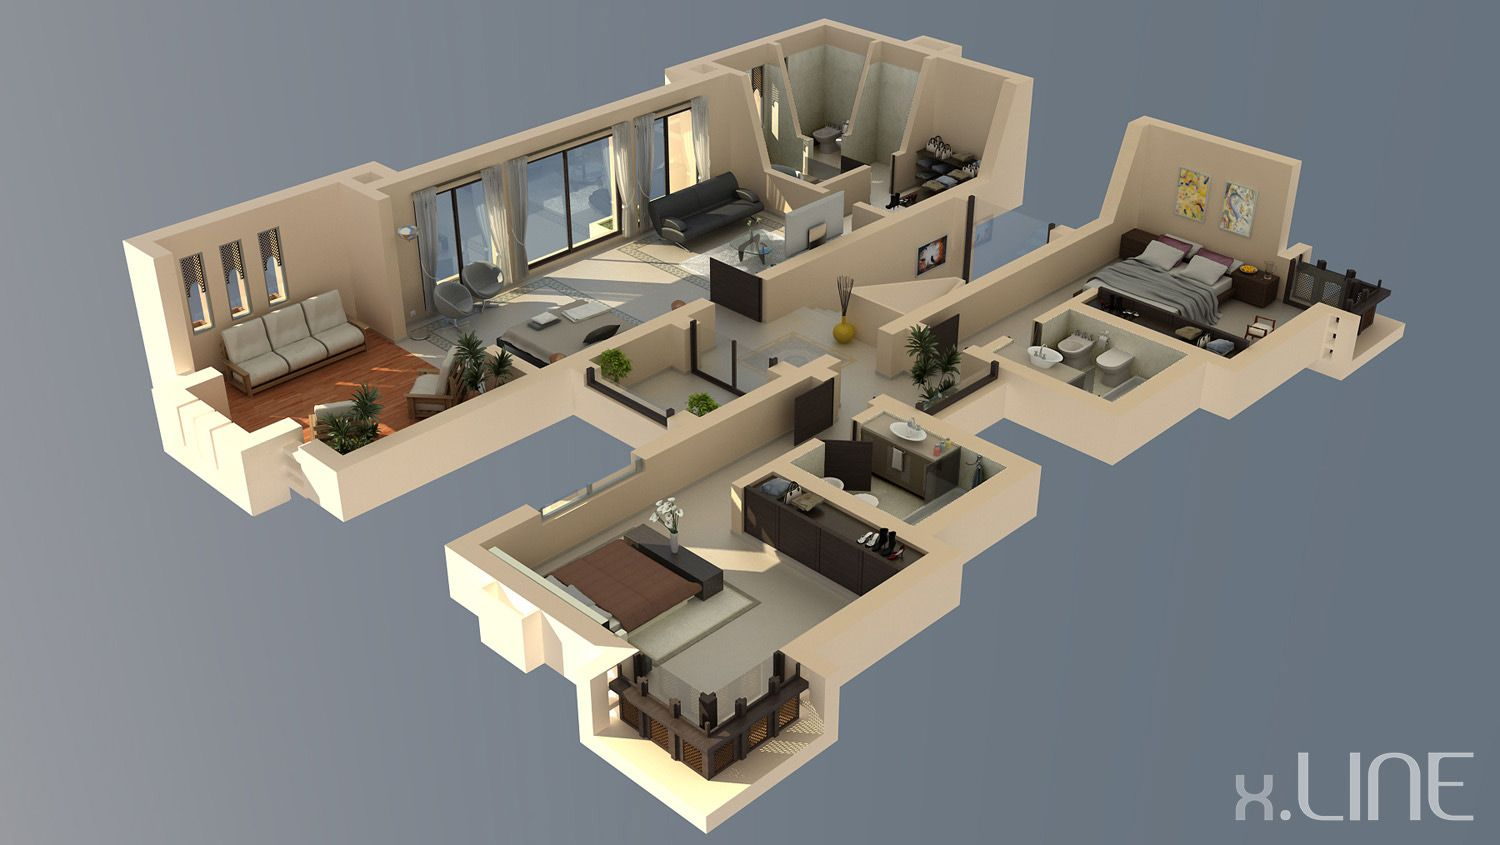 Pin by maria lynch on 3d house plans floor plans pinterest for Turn floor plan into 3d model